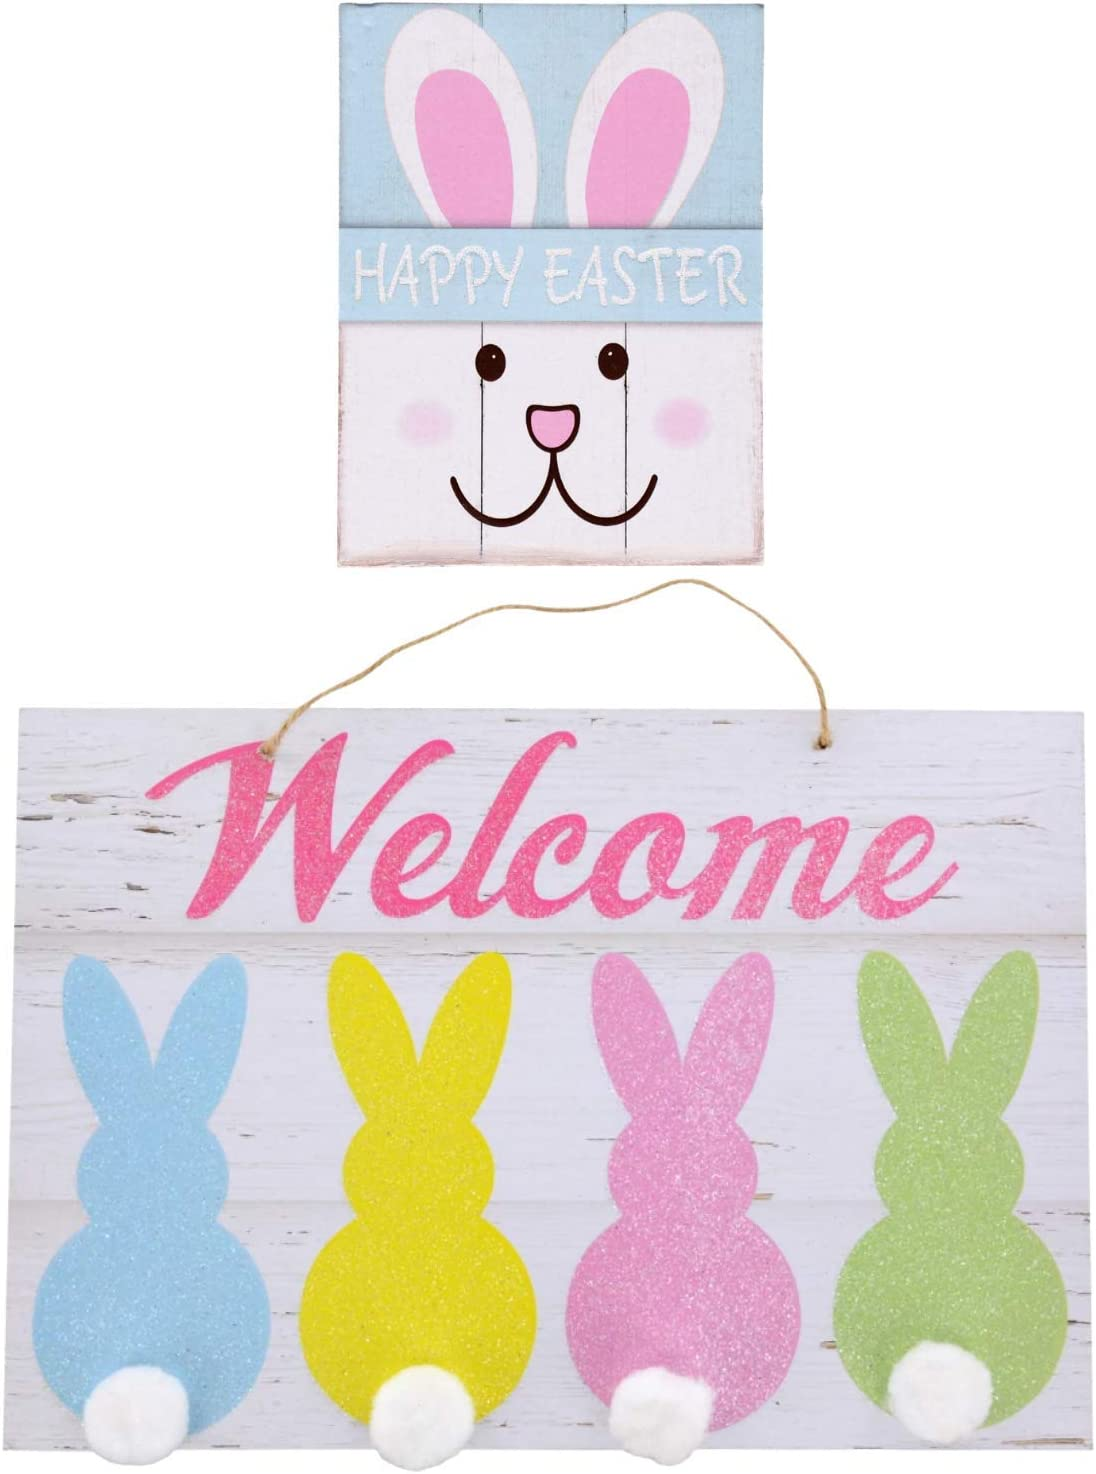 Just4You Easter Décor - 1 Welcome Sign with 4 Cotton Tail Bunnies and 1 Happy Easter Bunny Table Top or Wall Sign - Country Farmhouse Distressed Wood Look - Set of 2 Wooden Signs